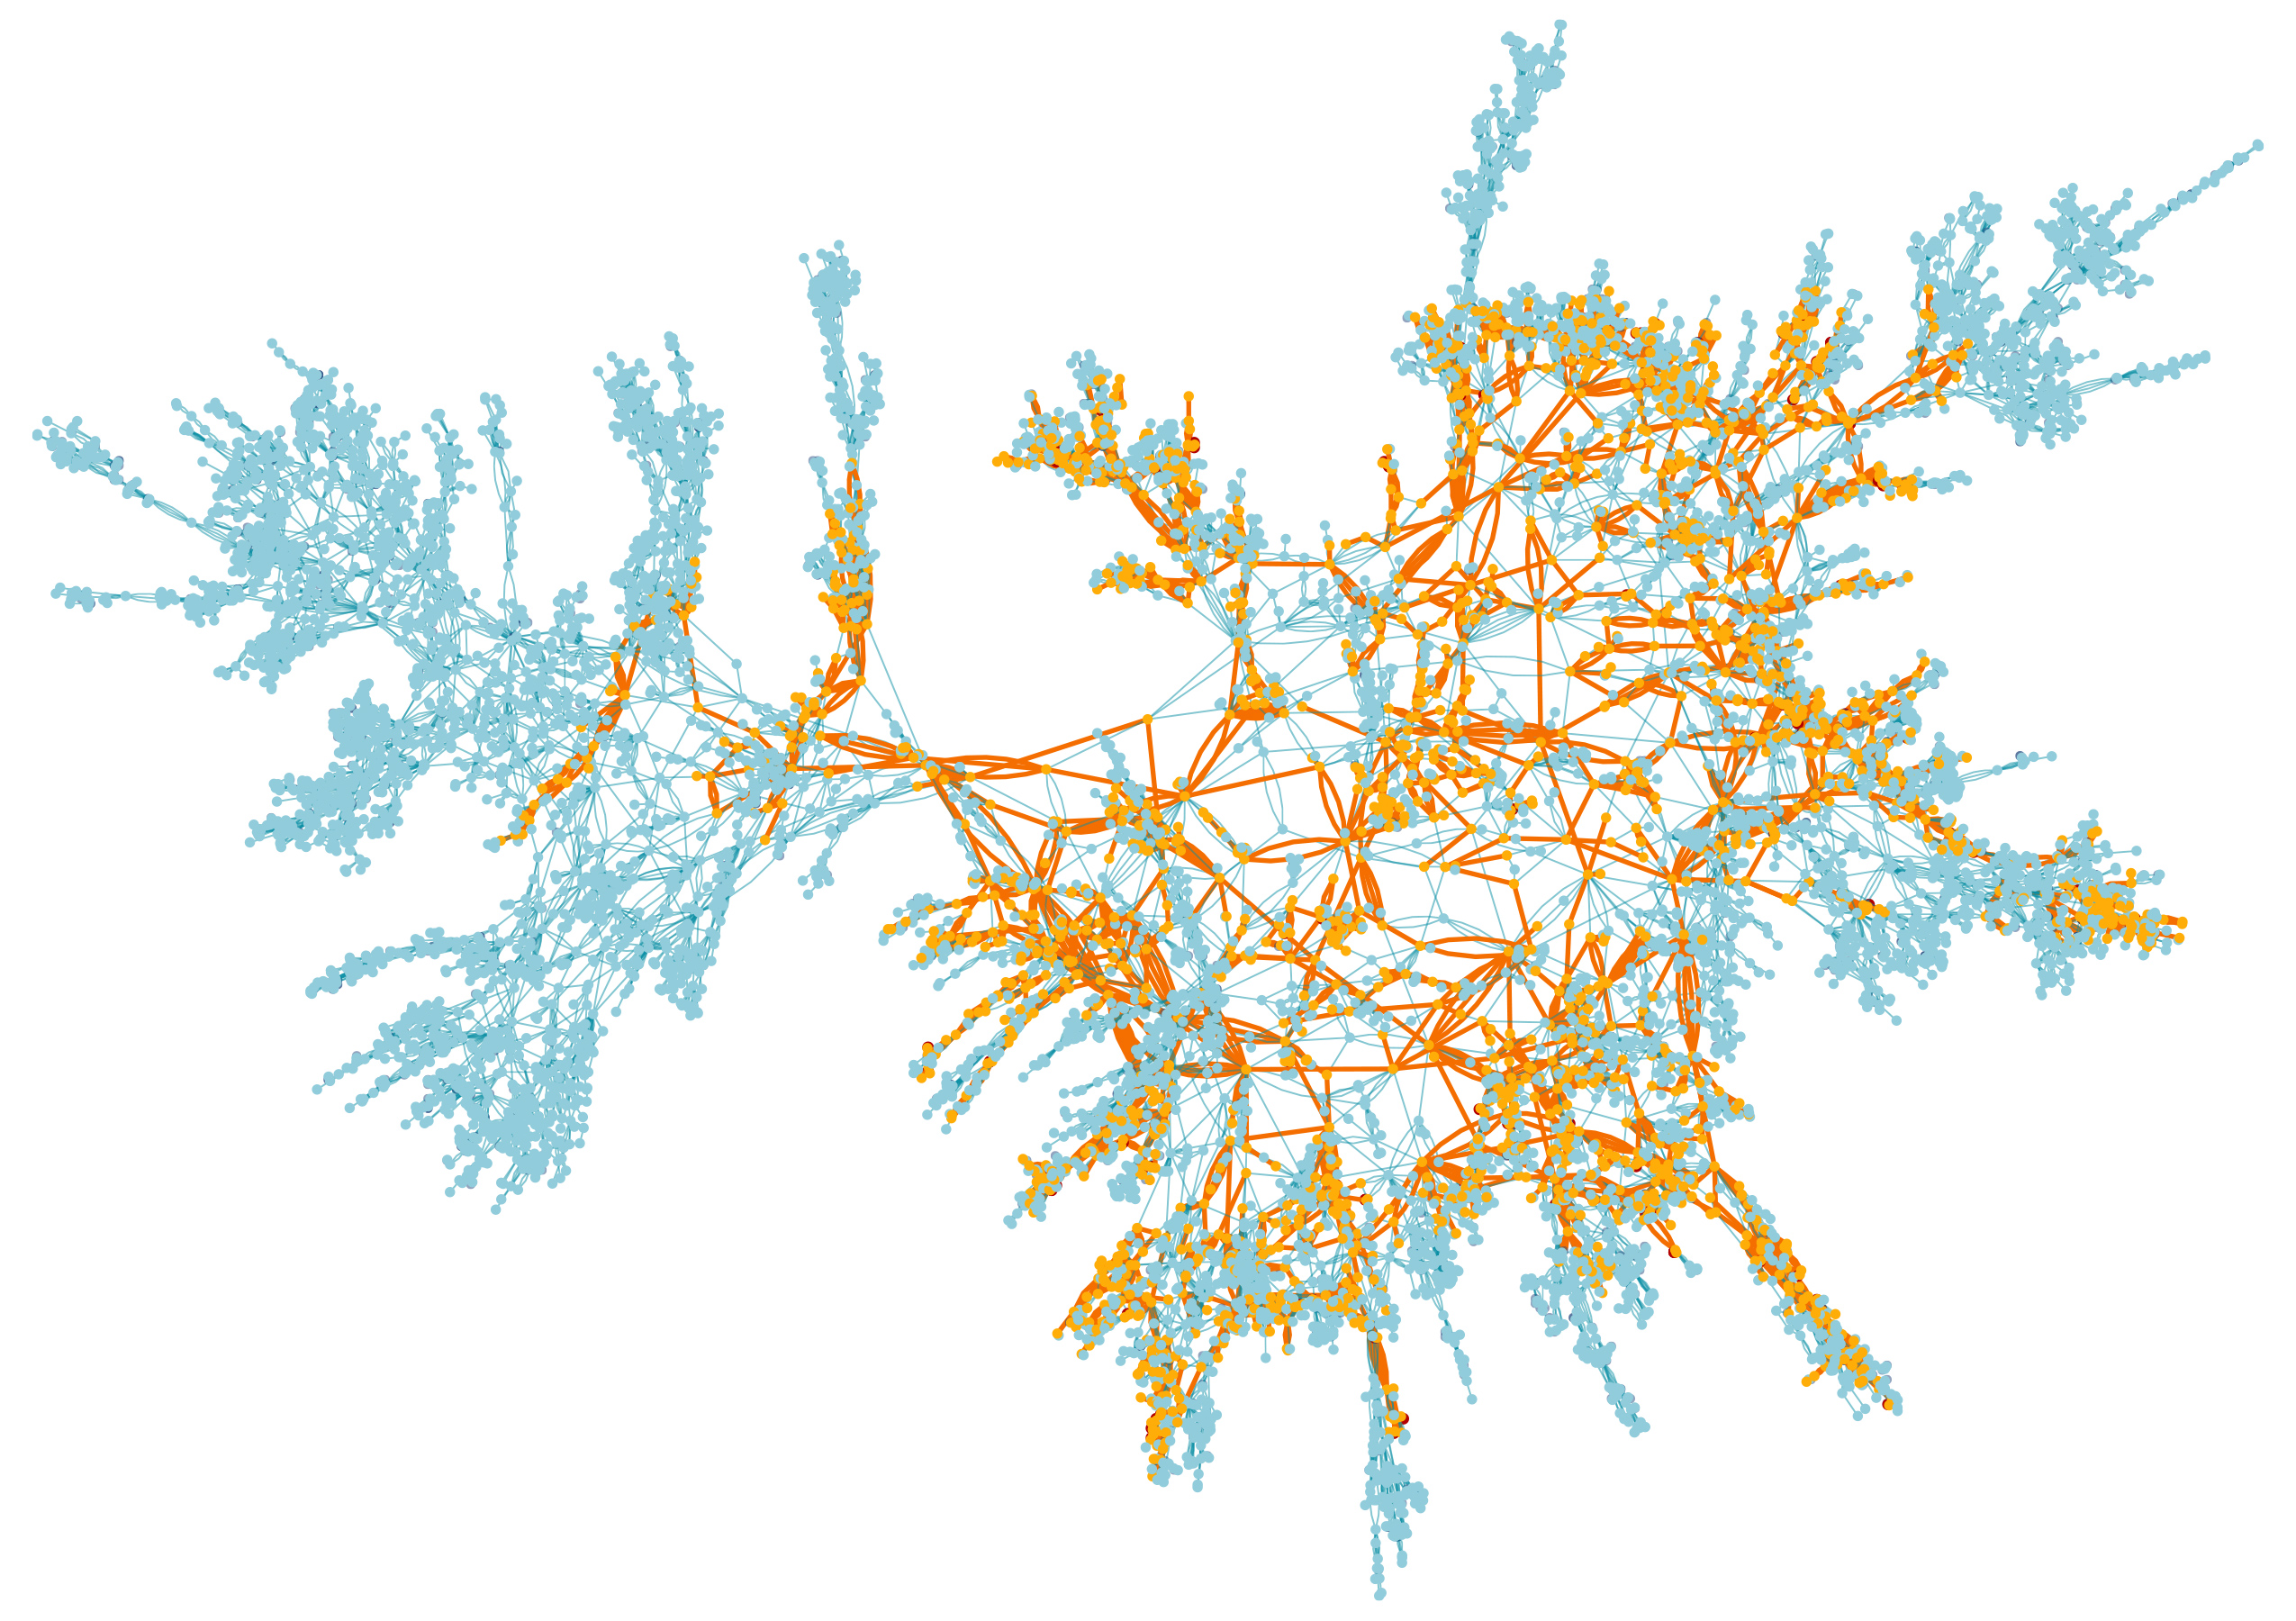 A map of the vertices in a random surface with the largest cluster highlighted in orange.